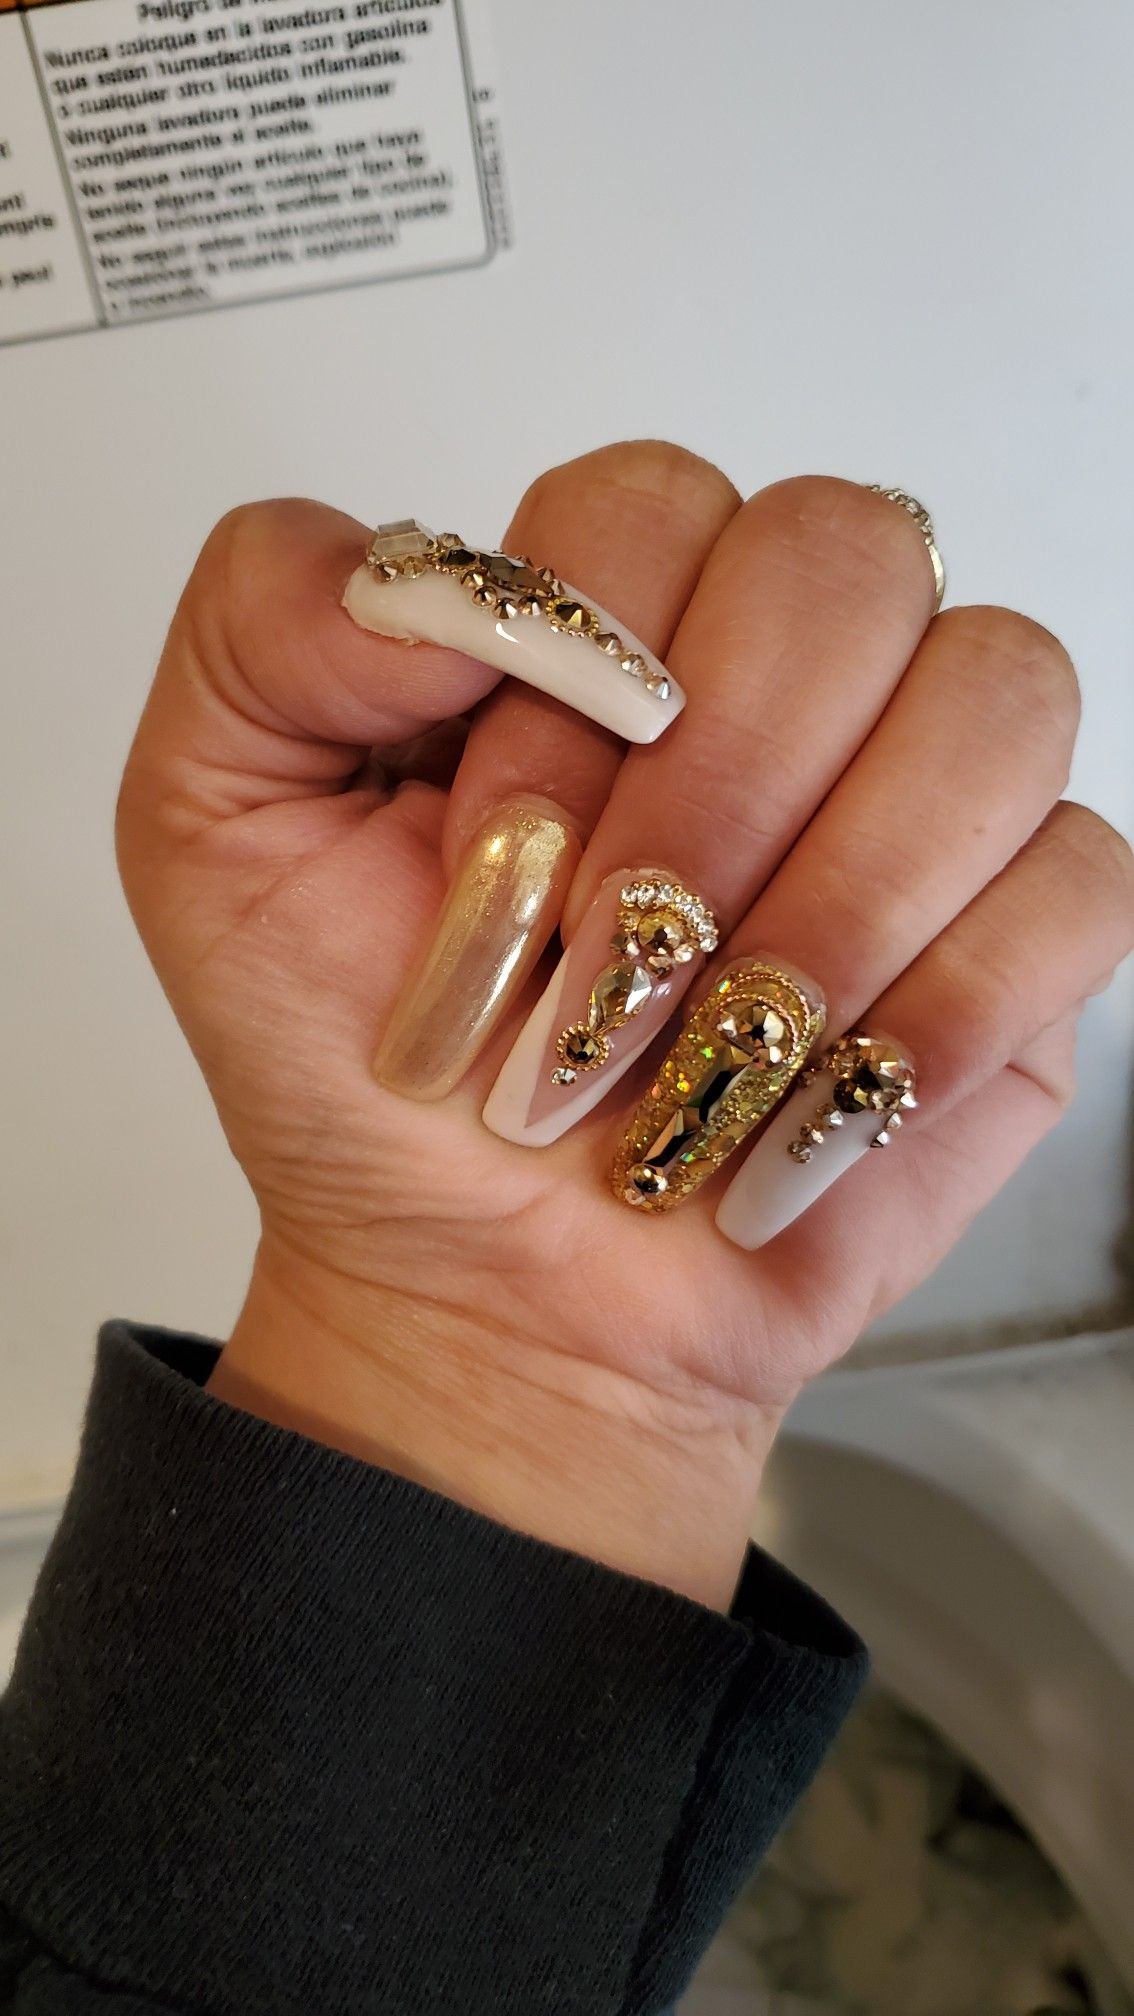 New Year's nails 2020, gold nails, bling nails in 2020